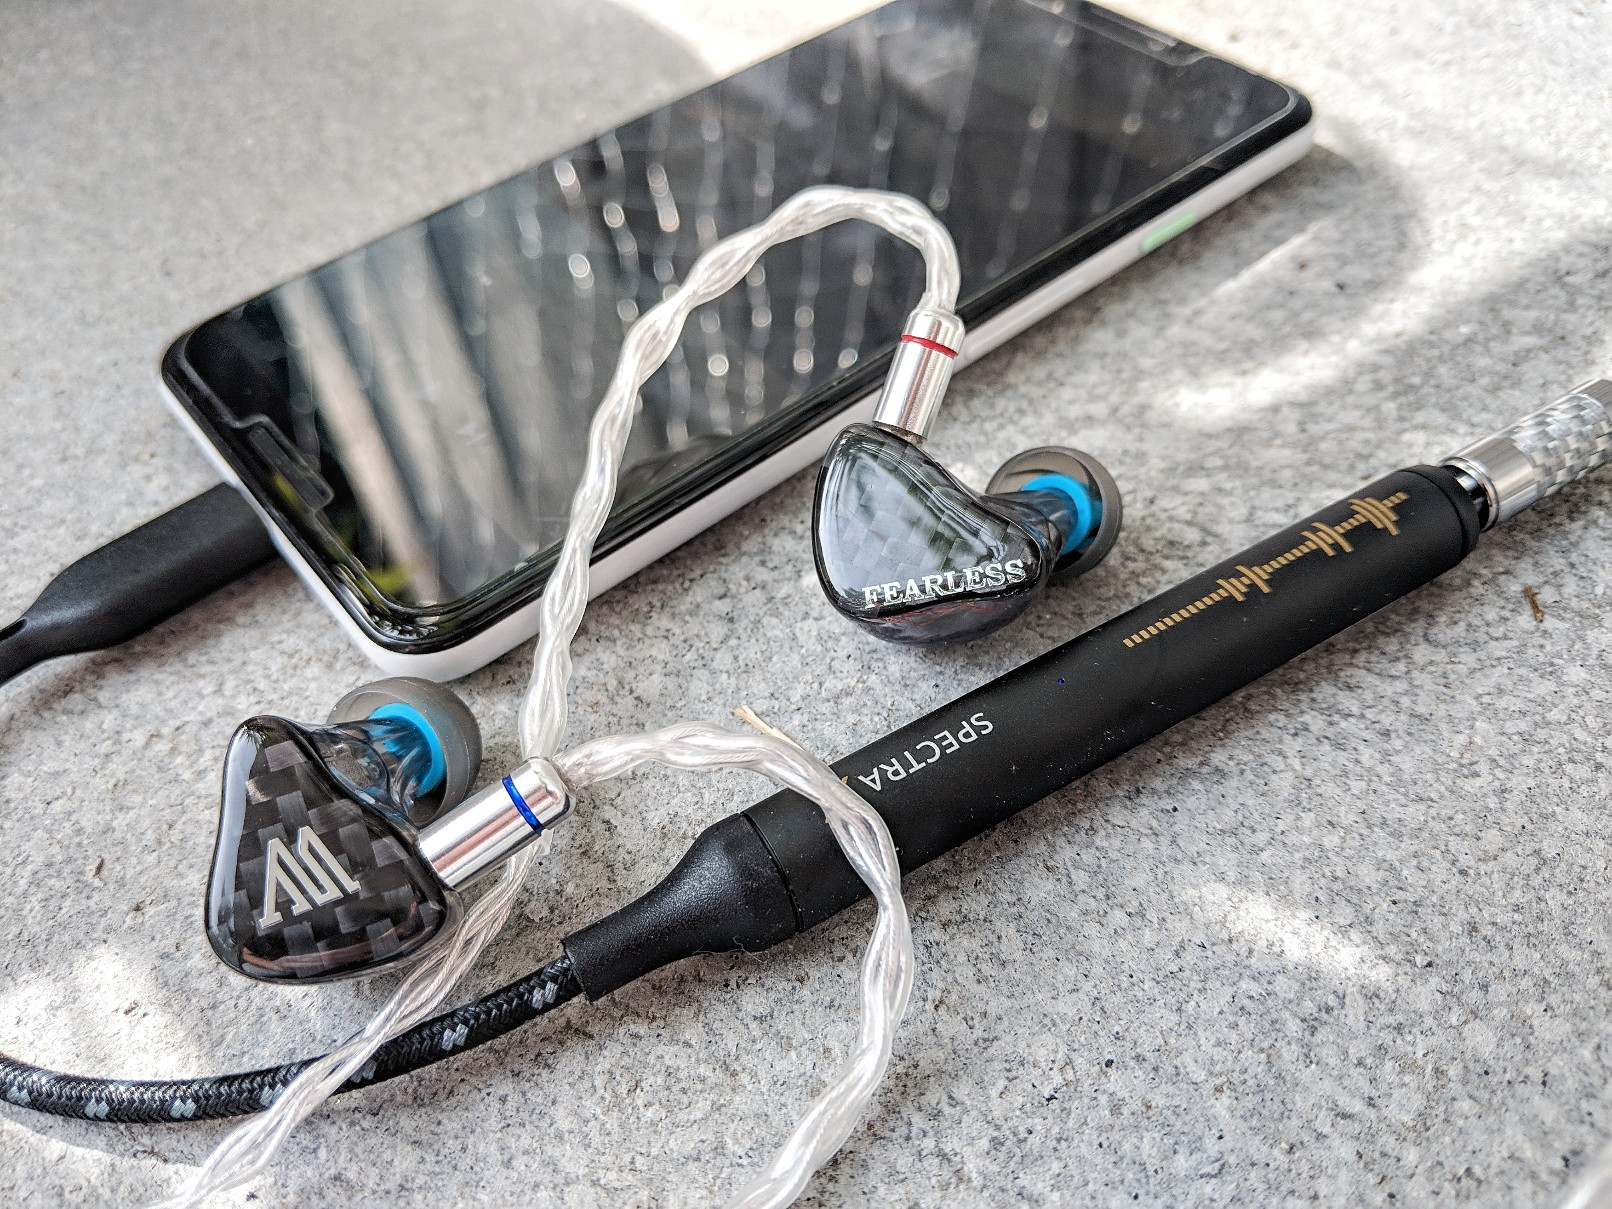 The Nextdrive Spectra X is a DAC and Amplifier designed to be used with a smartphone. In this photo the Spectra X is connected to a Google Pixel 2 and the Fearless Audio S8P